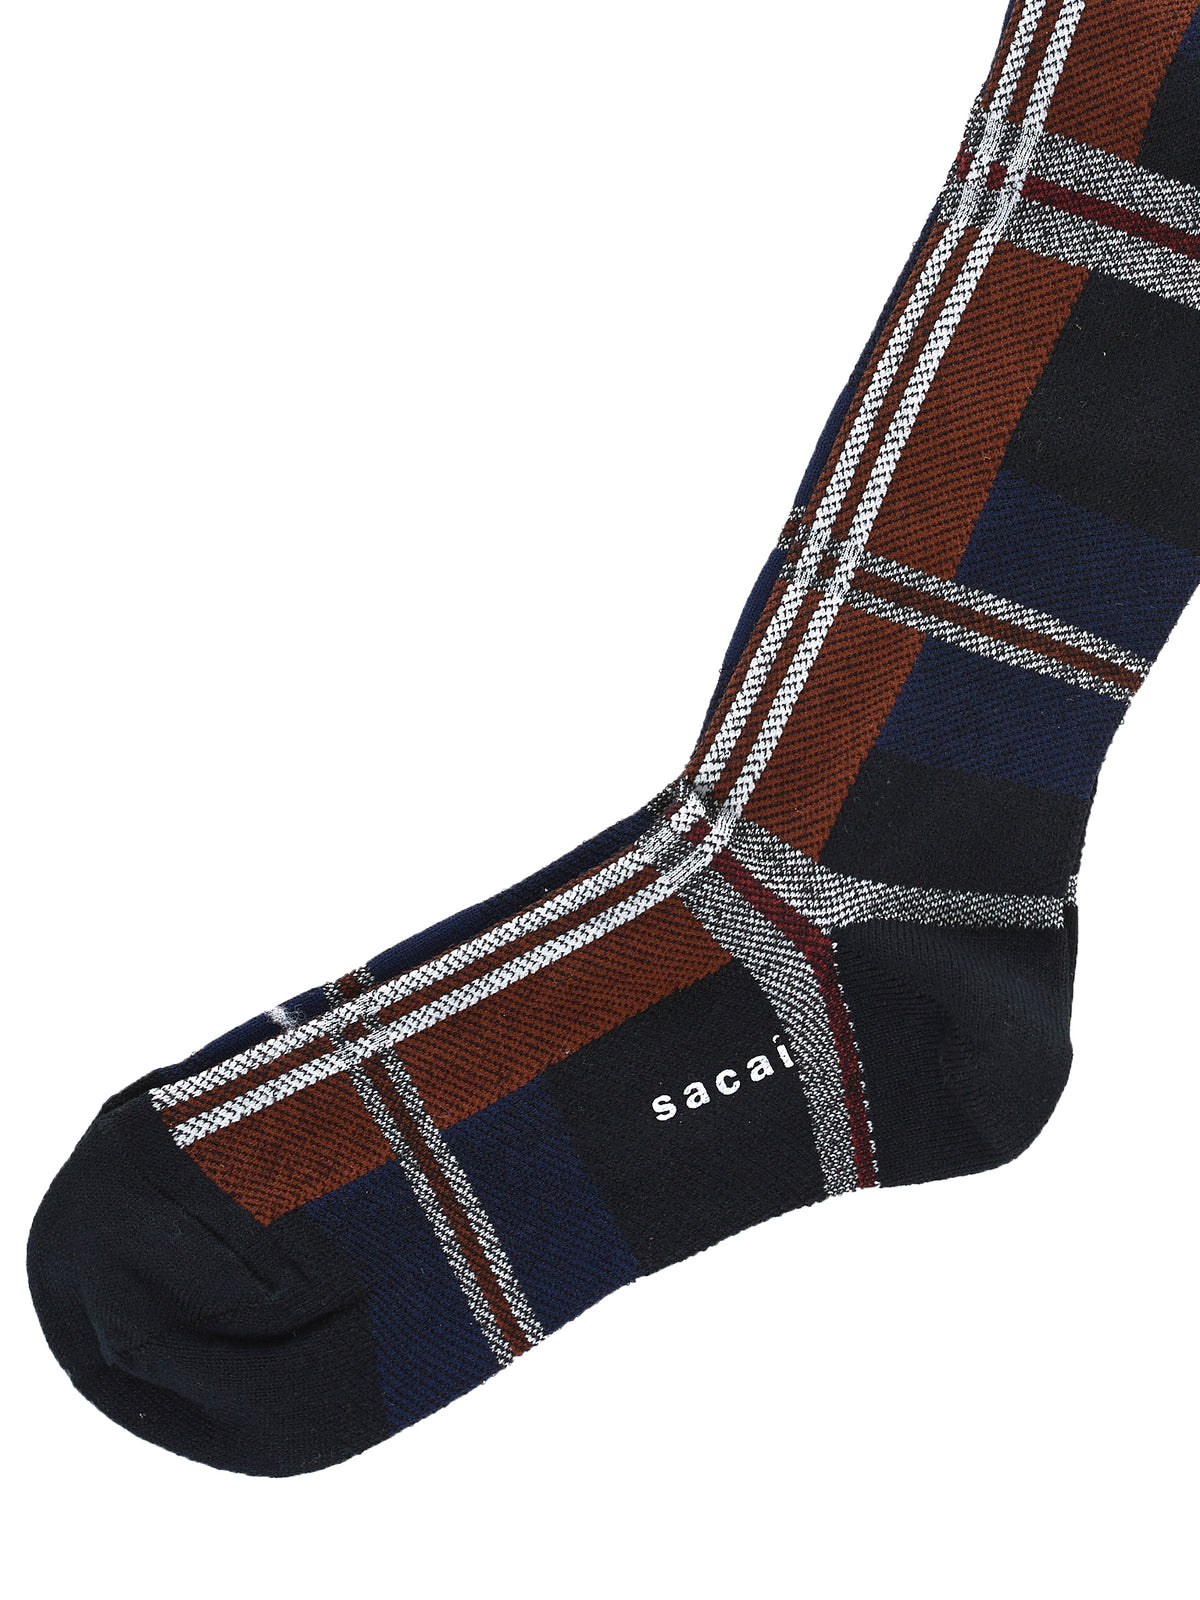 Knit Tartan Socks (17-03474-NAVY-OFF-WHITE)